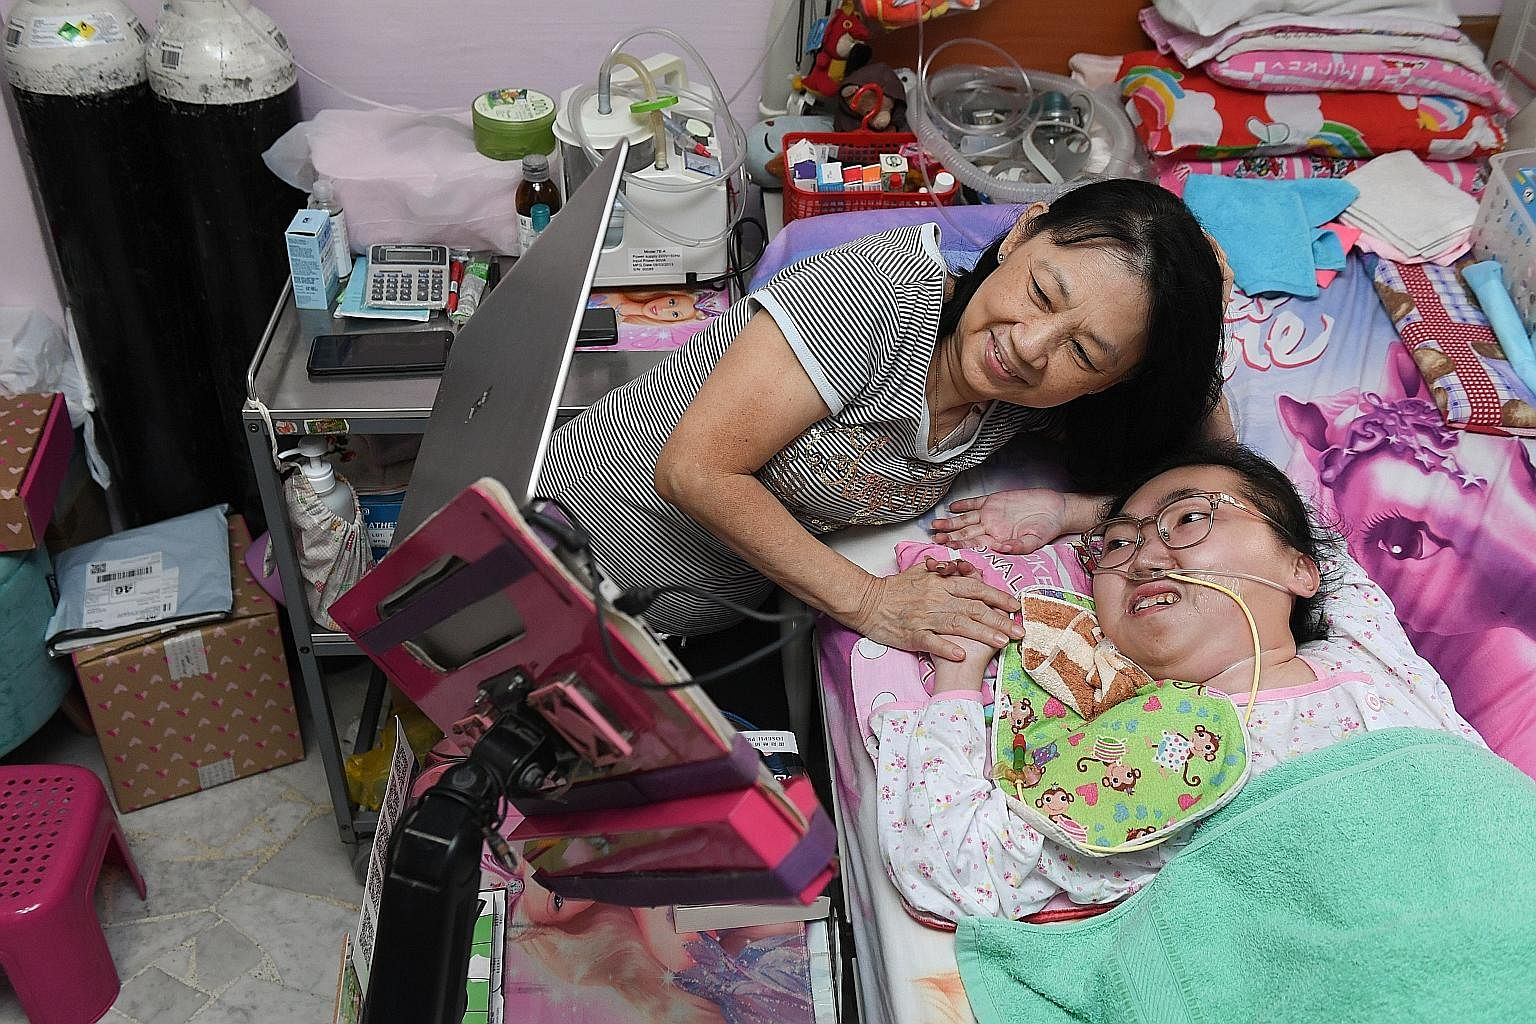 Although she suffers from spinal muscular atrophy type 2 and is confined to her bed, Miss Vivian Goh, seen here with her mother Ivy Yong, is able to run an online business, play online games, watch YouTube videos and attend online church services on